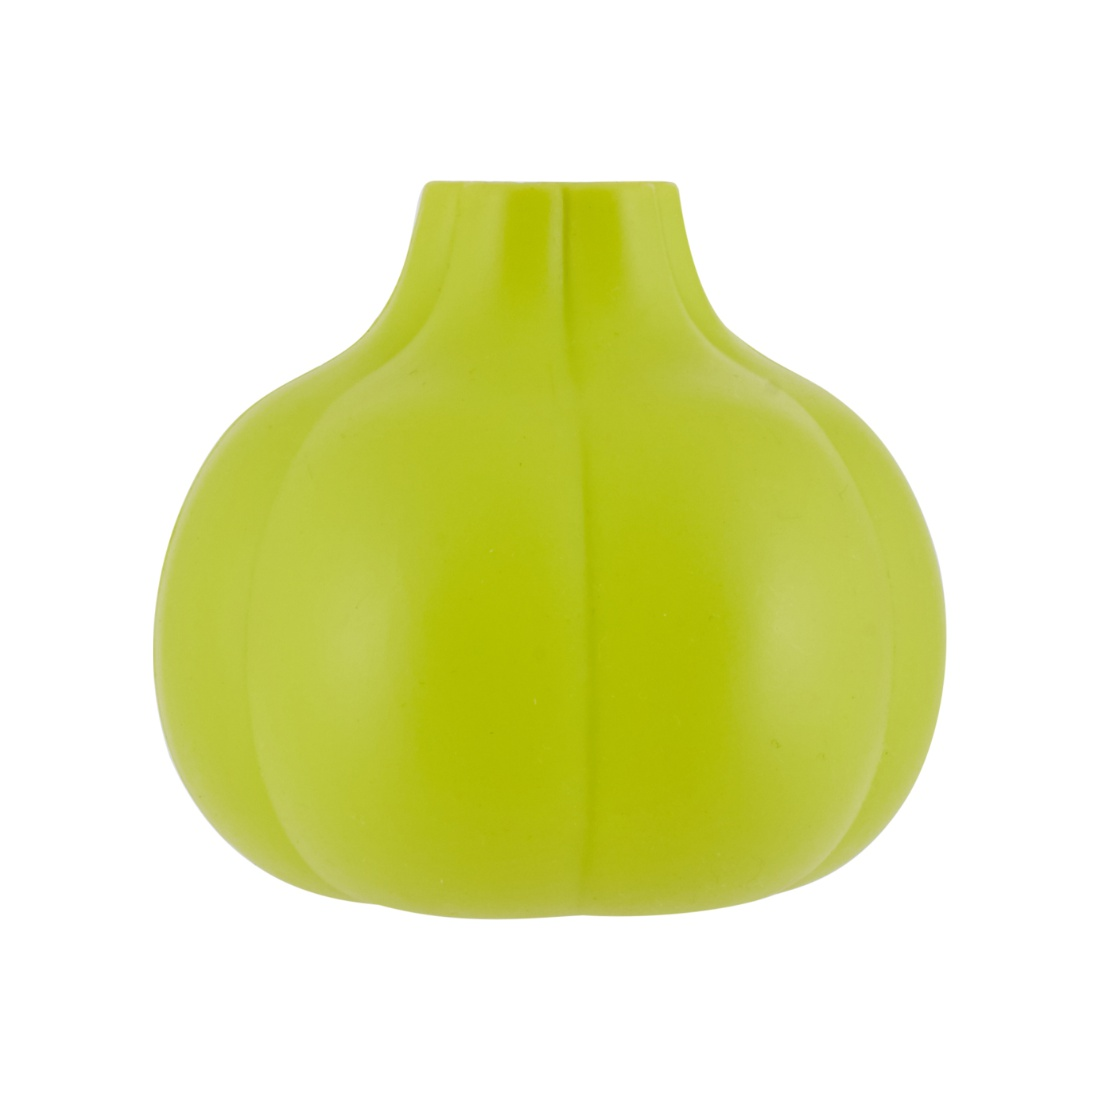 Kitchen Aid Silicon Garlic Peeler Plastic Kitchen Tools in Green Colour by Living Essence